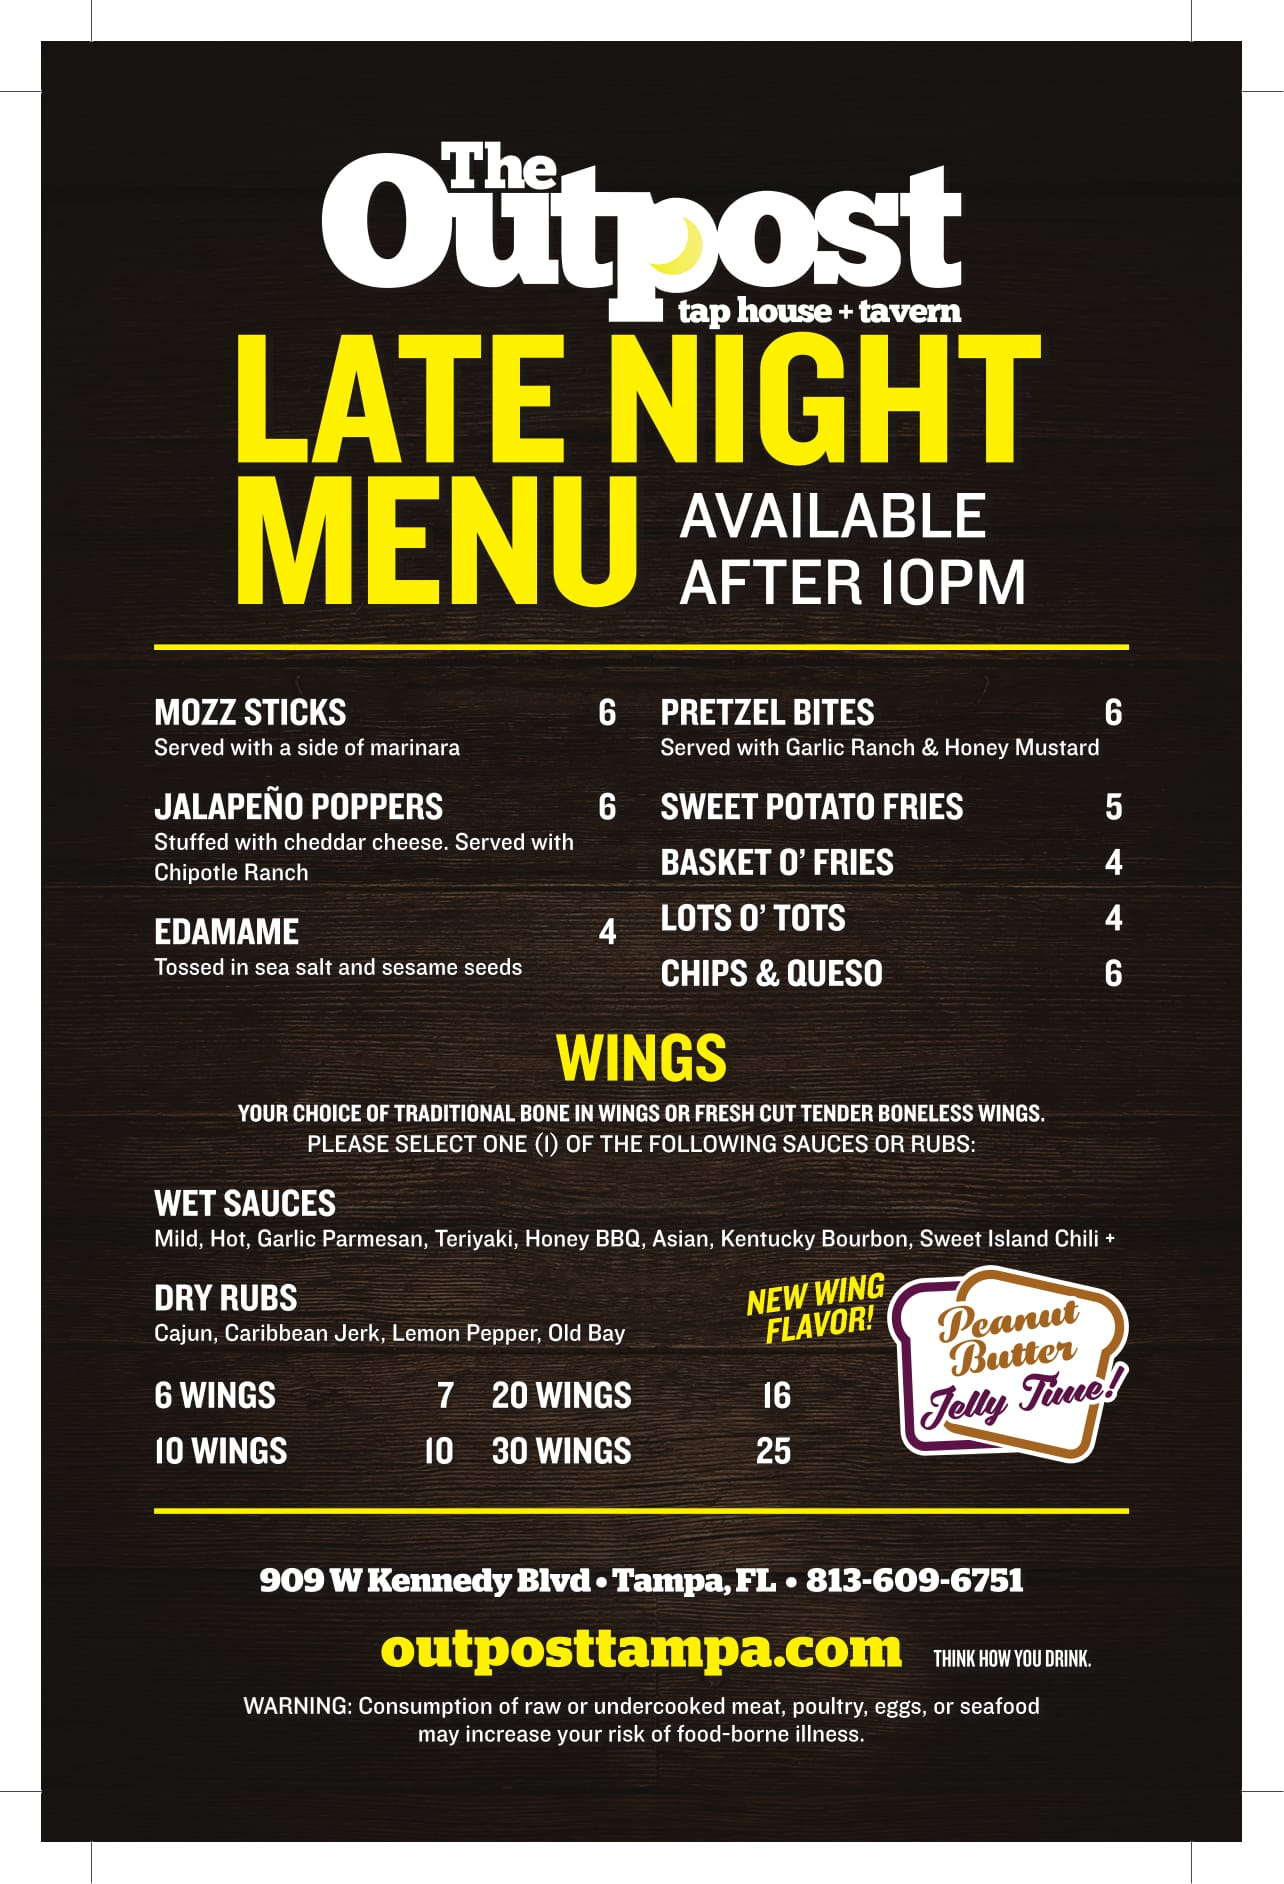 Late Night The Outpost Tap House + Tavern Menu